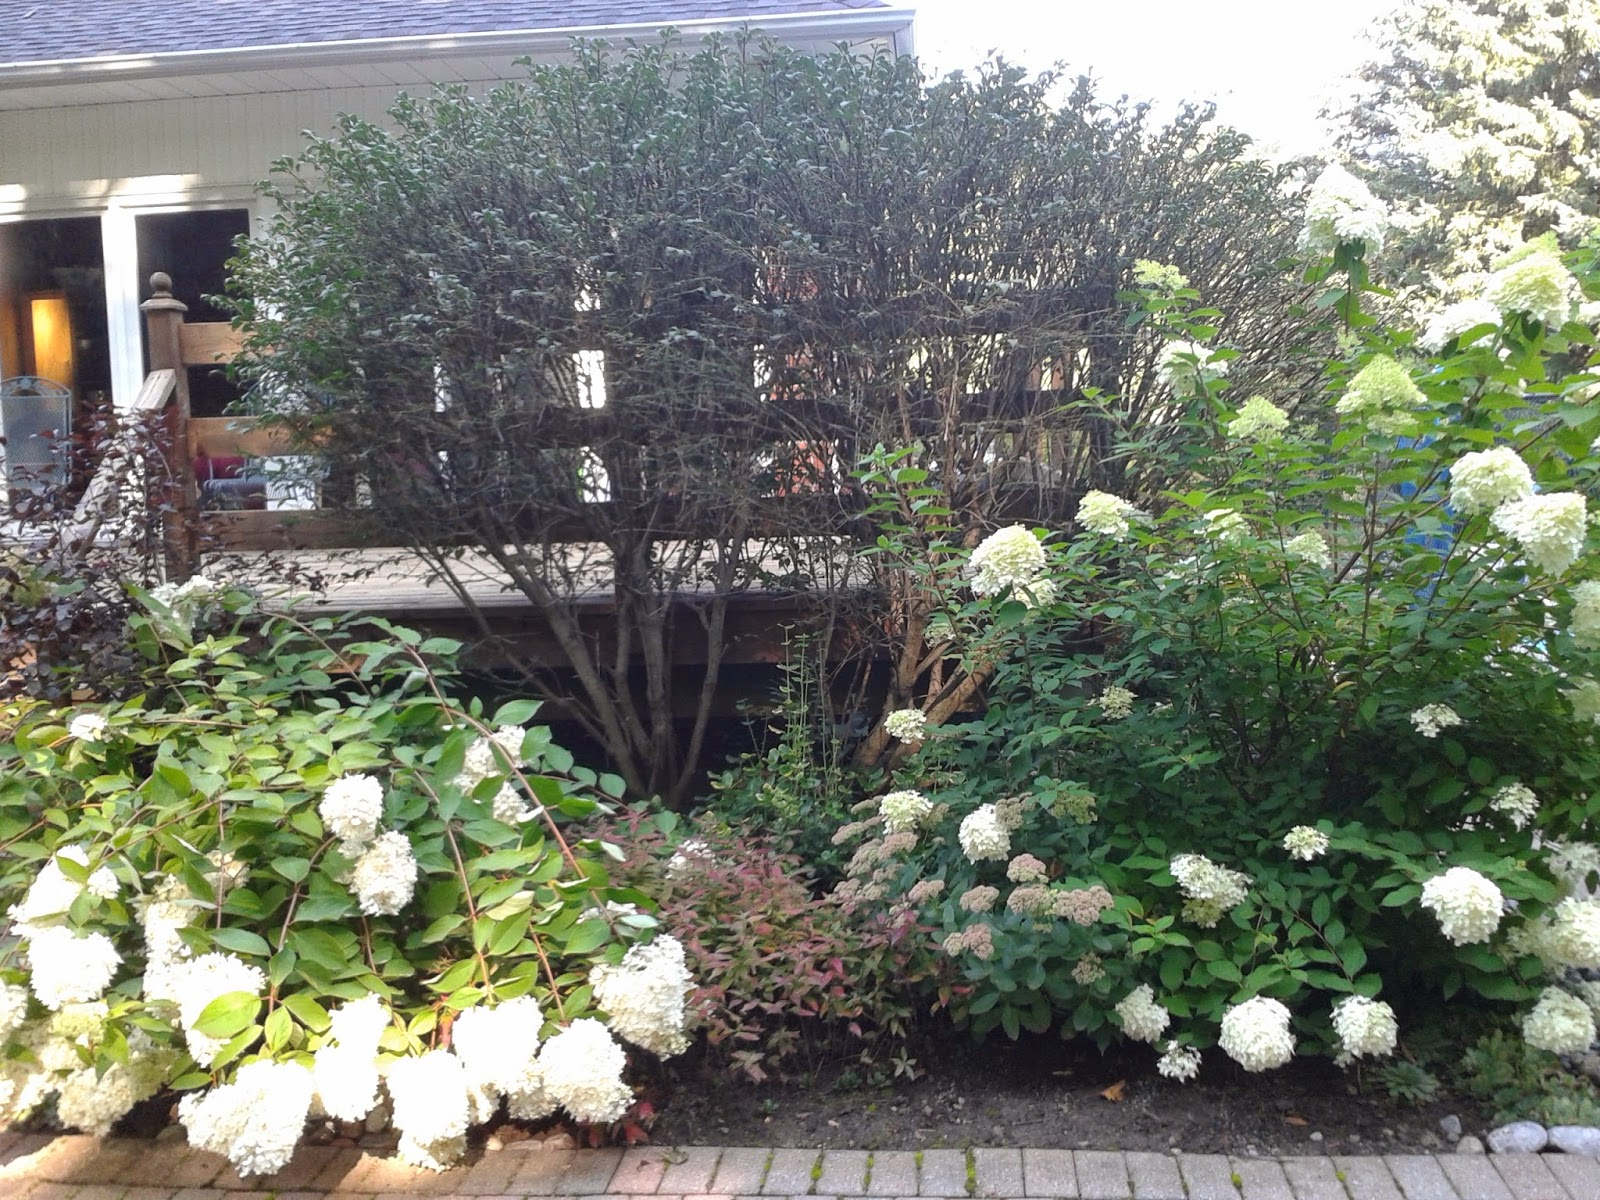 Oshawa Garden Club | Greenleaf Newsletter